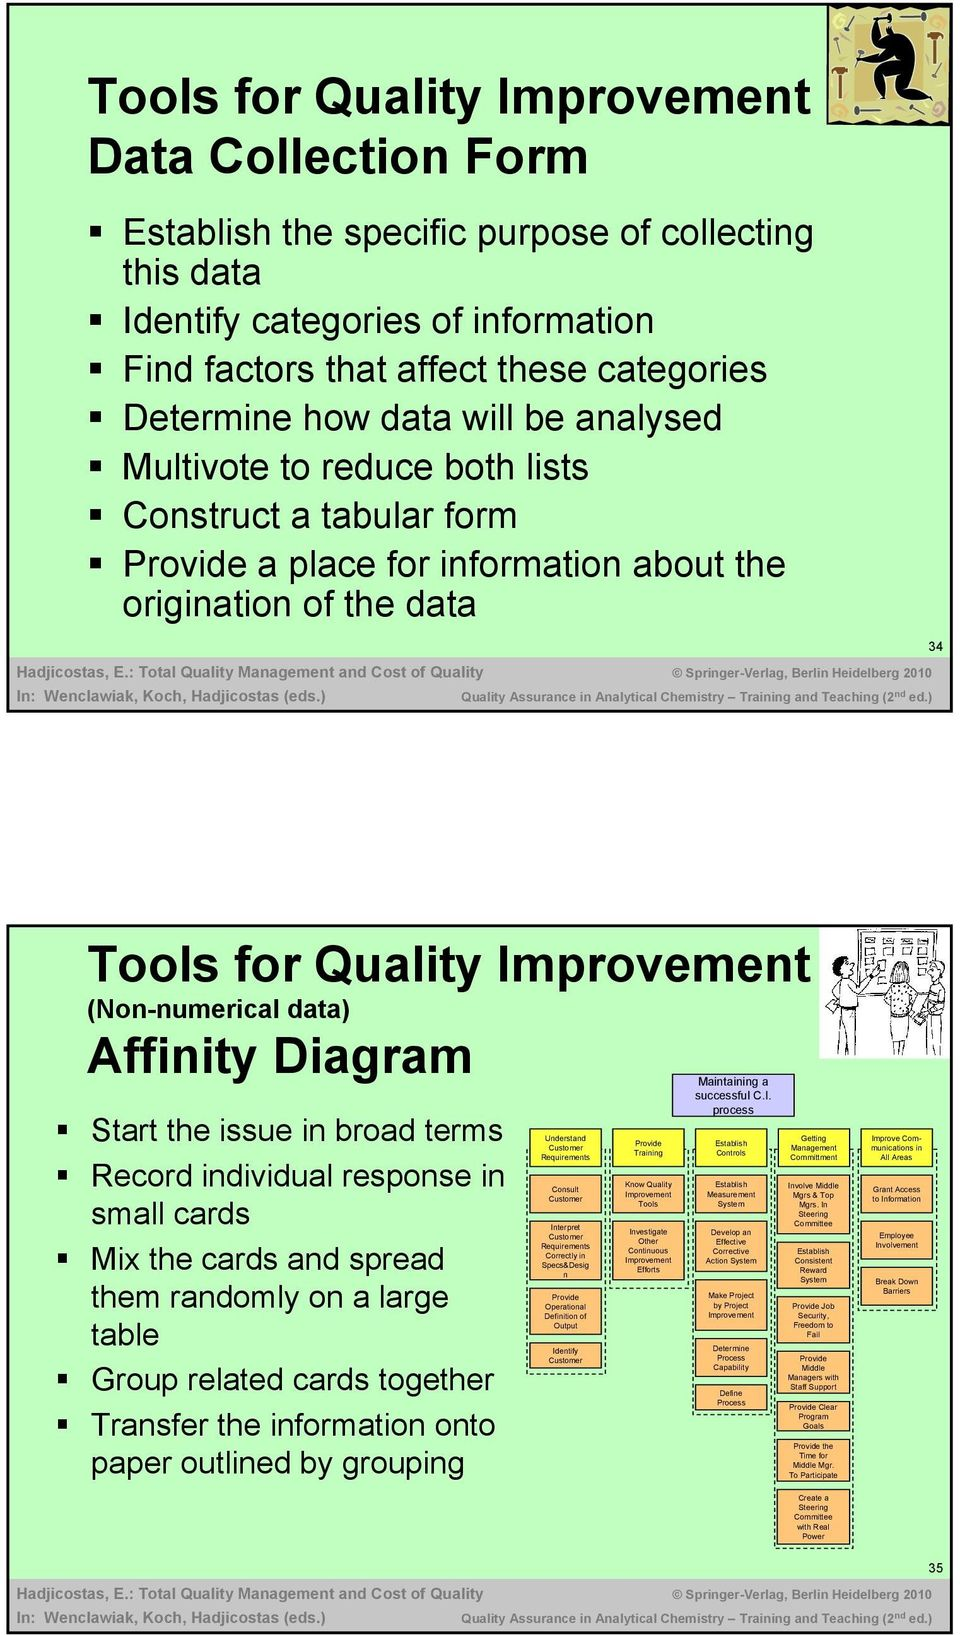 Affinity Diagram Start the issue in broad terms Record individual response in small cards Mix the cards and spread them randomly on a large table Group related cards together Transfer the information